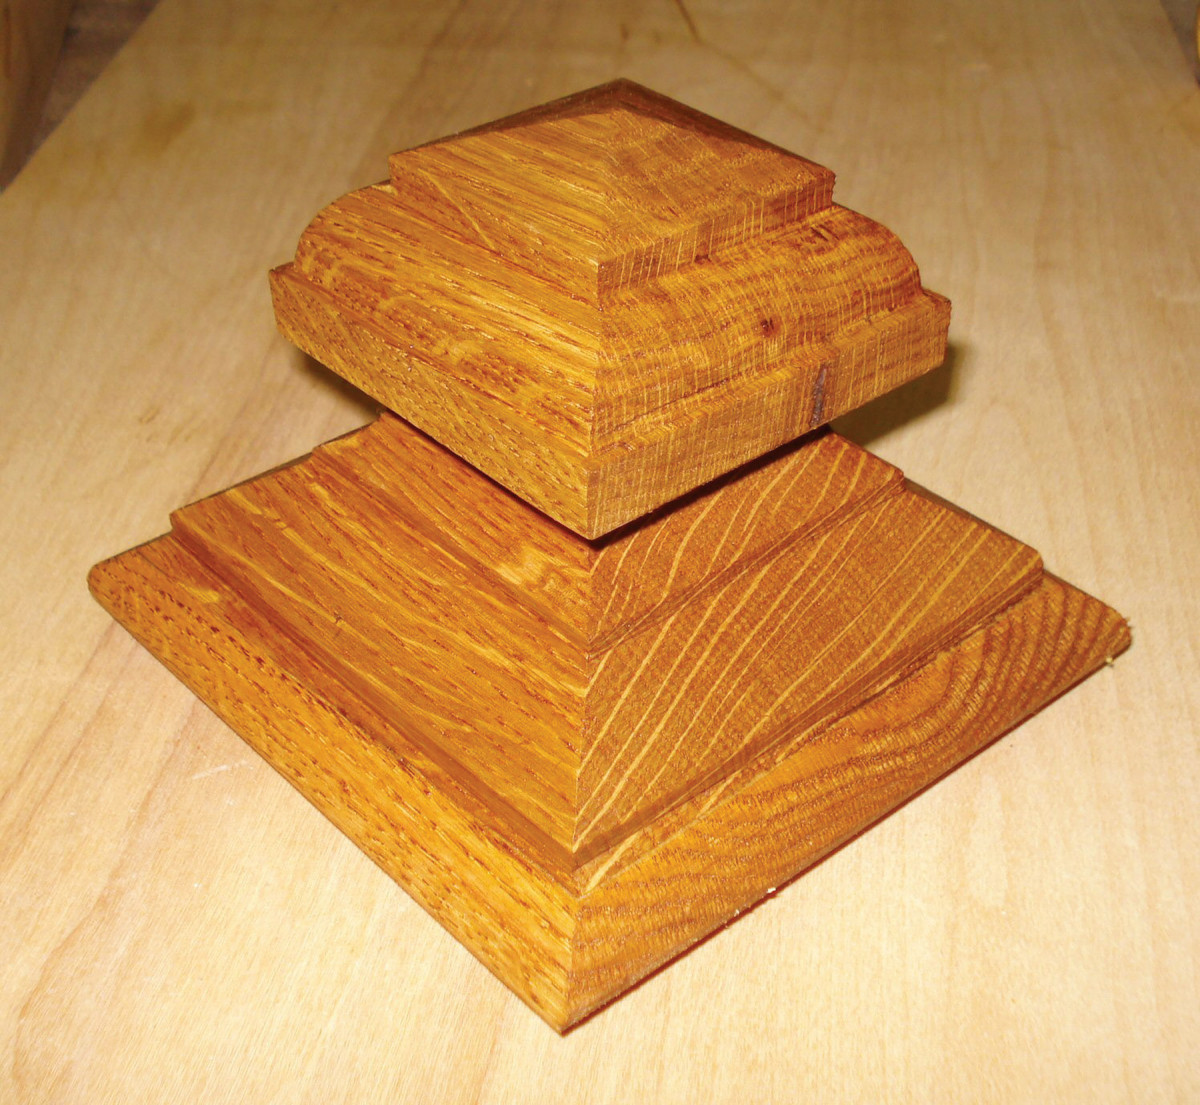 Pattern-Cut Finials | Popular Woodworking Magazine